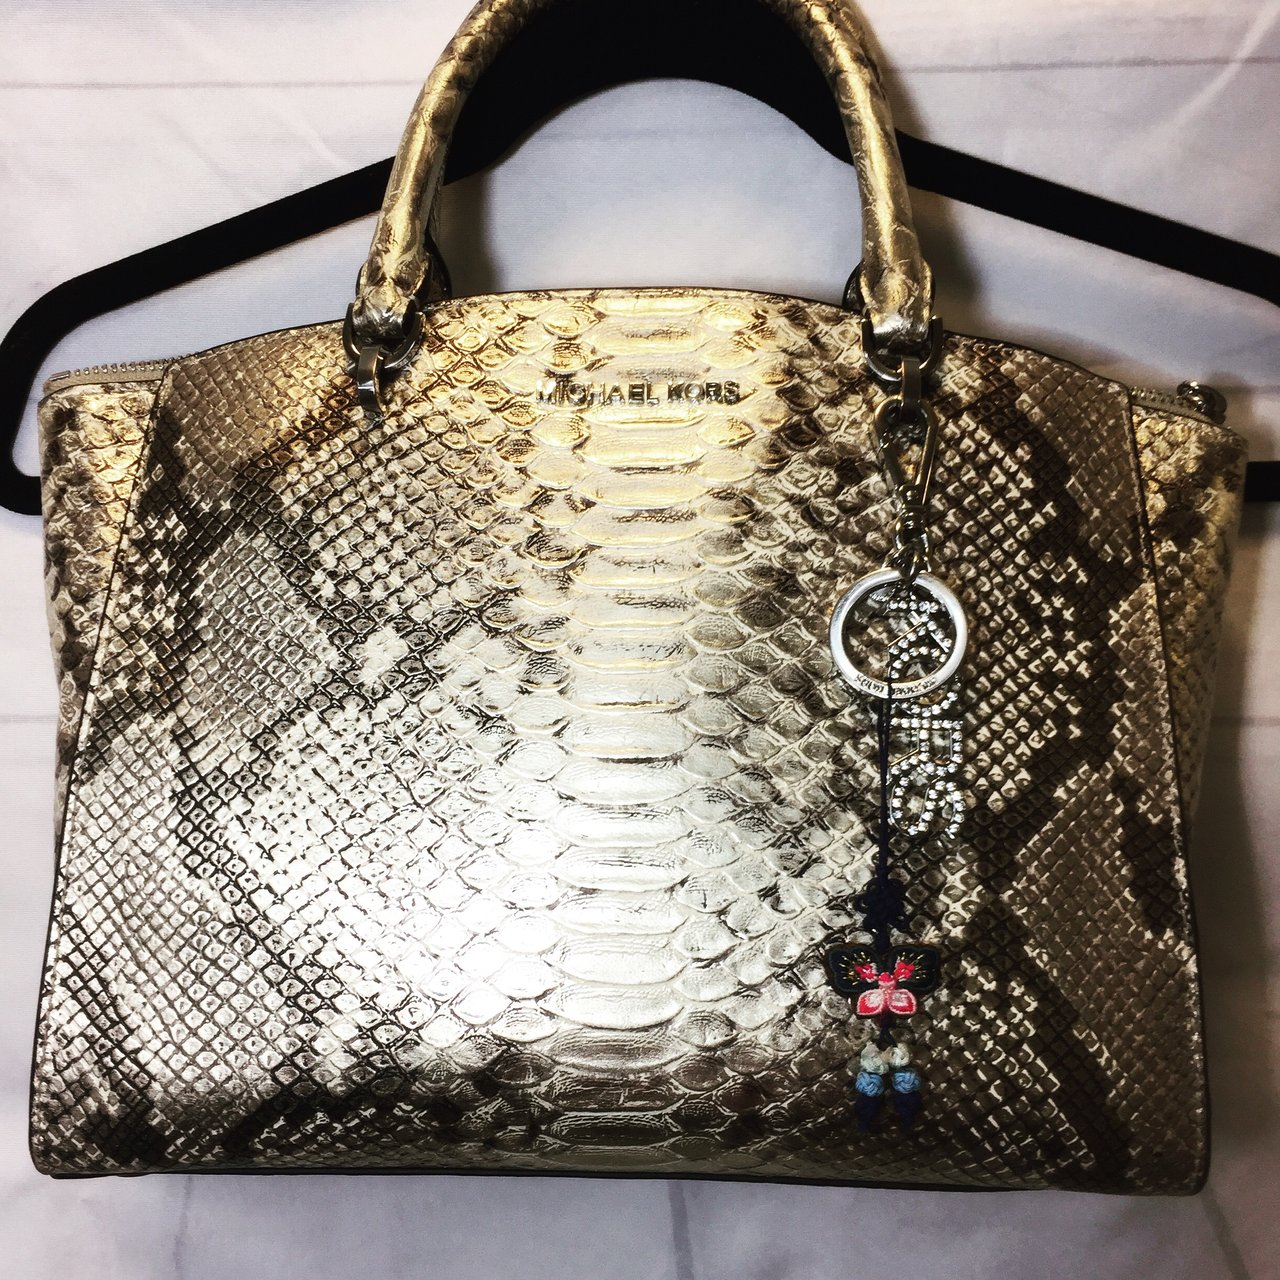 9eeb3d1e57a1 Michael Kors Purse Available ❣ -Will Accept Offers- This a - Depop